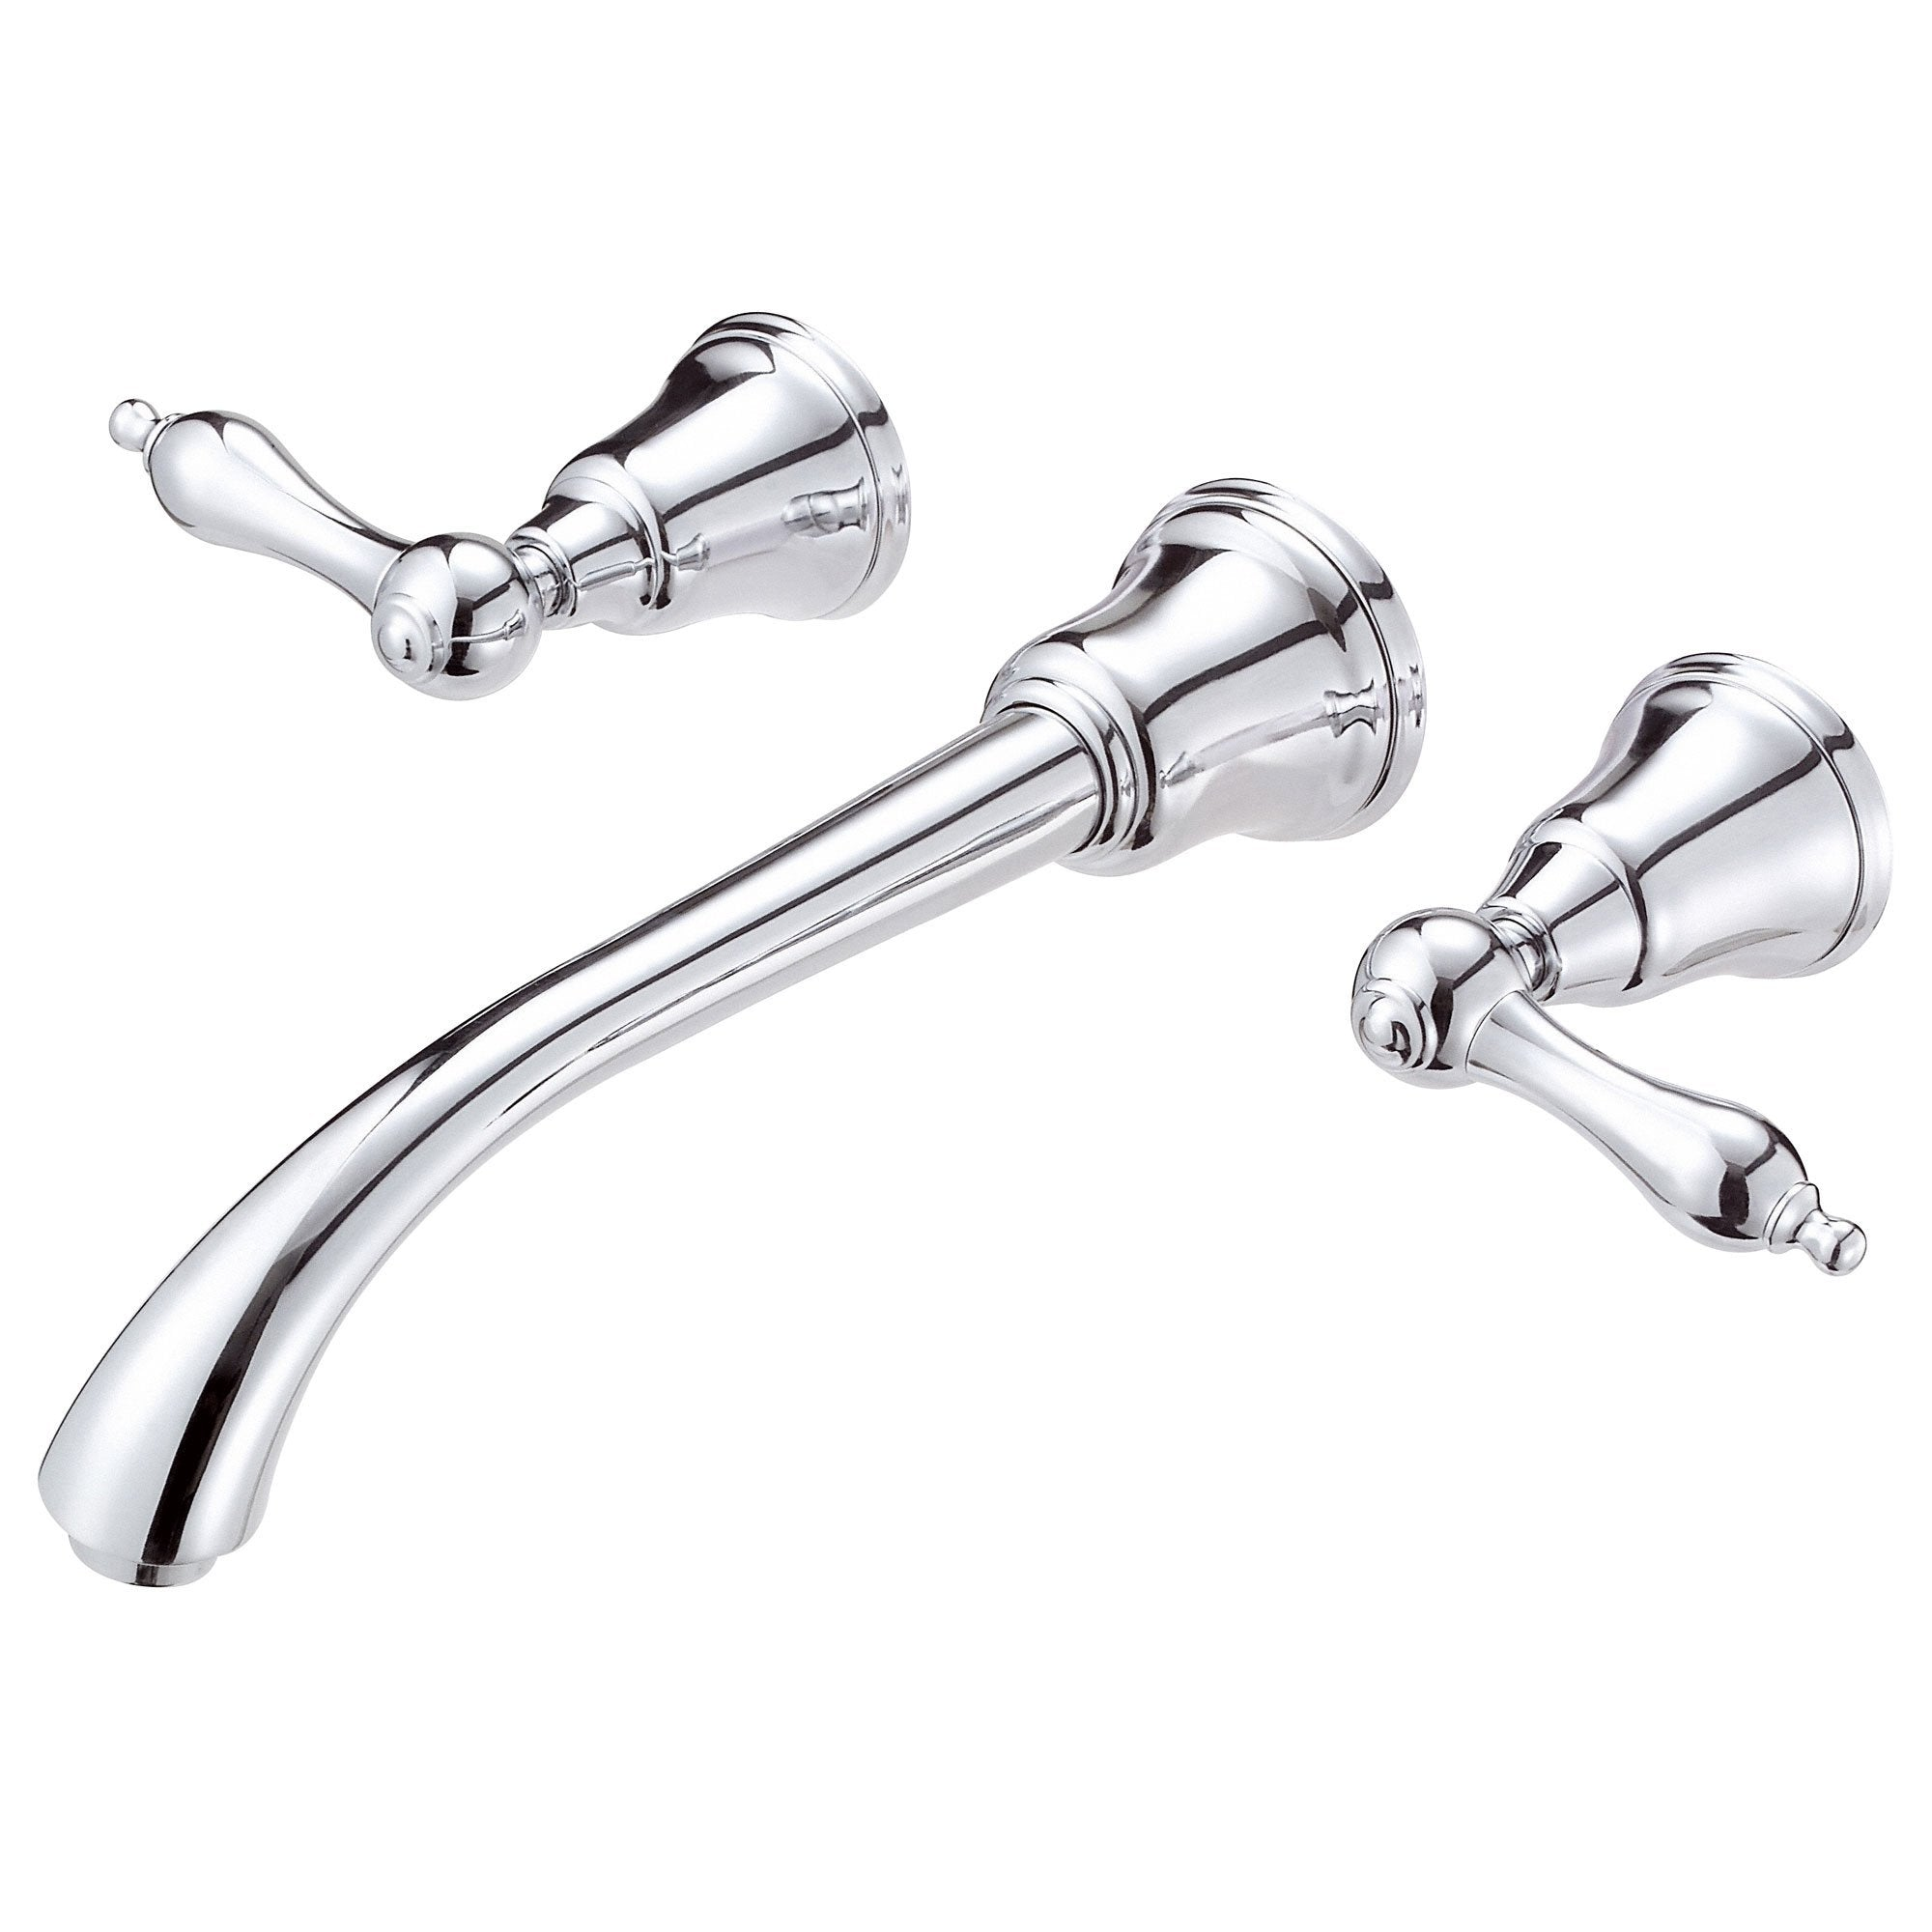 Danze Fairmont Chrome 2 Lever Handle Wall Mount Bathroom Faucet with Touch Drain INCLUDES Rough-in Valve